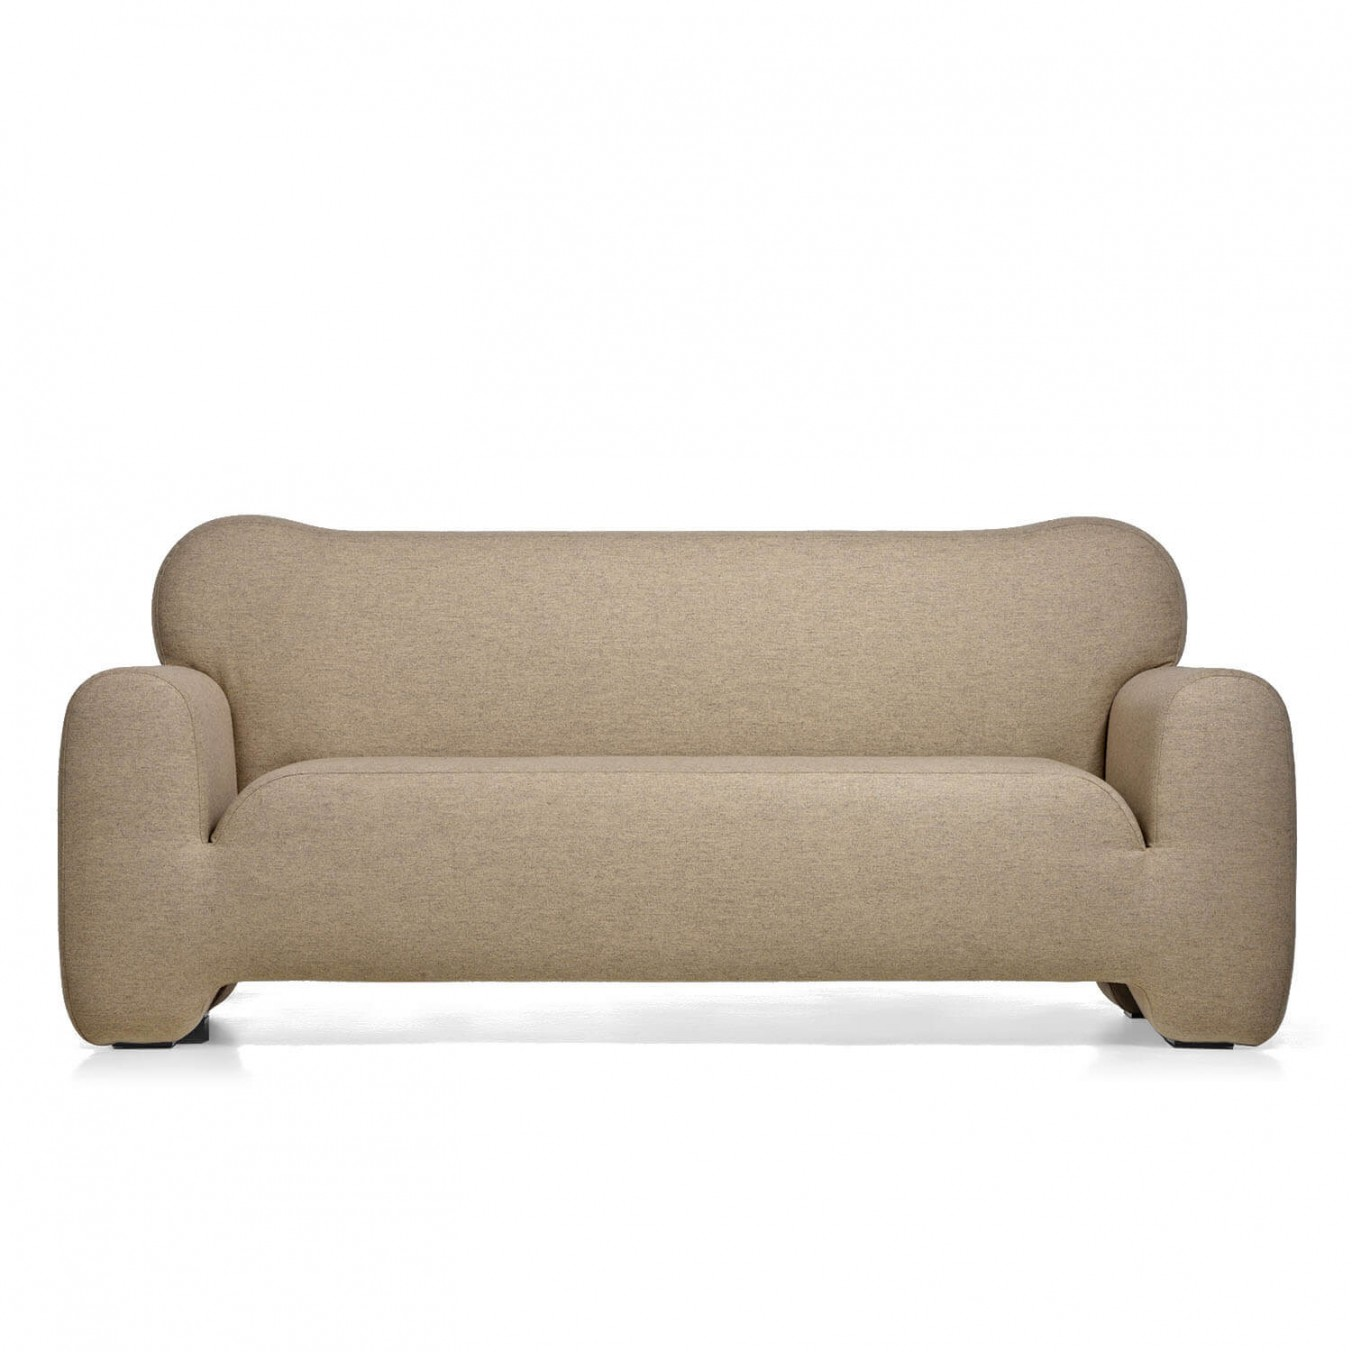 PAMPUKH sofa